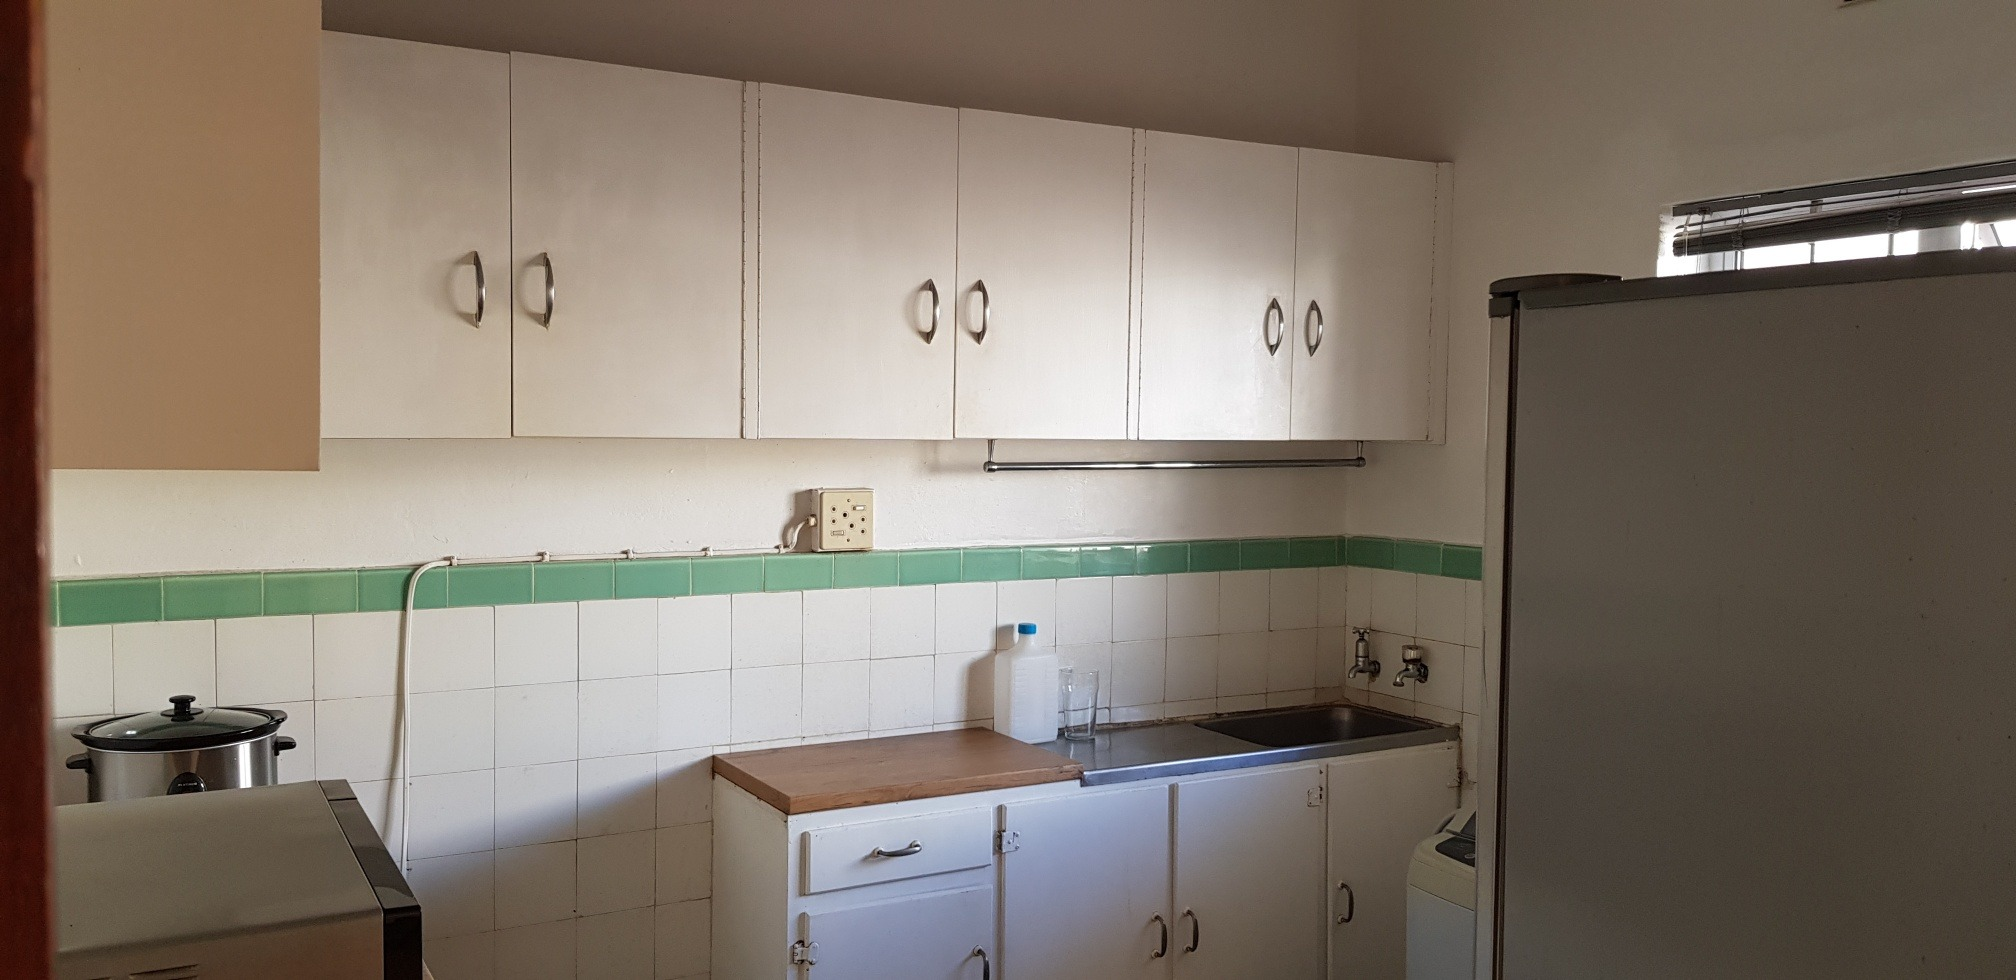 1 Bedroom Apartment / Flat For Sale in St Georges Park